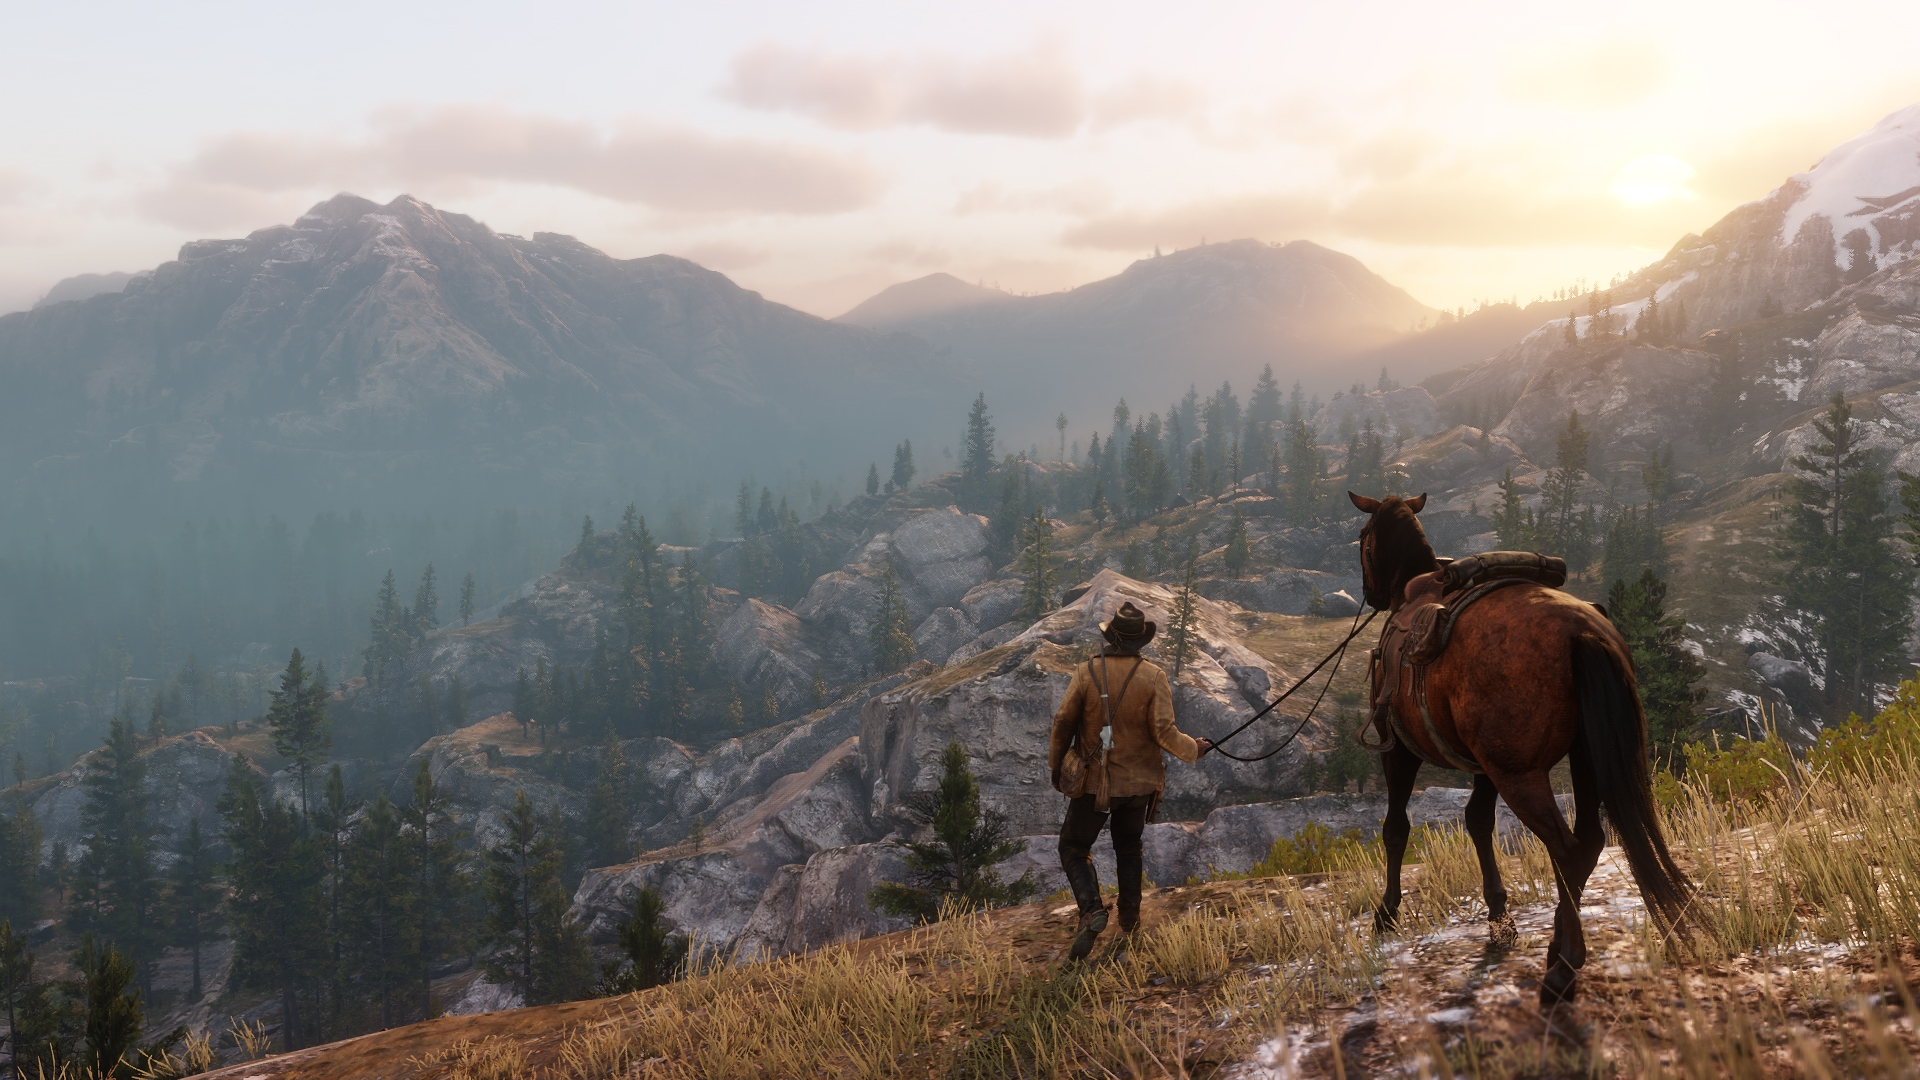 Red Dead Redemption 2 | PS4/X1 | 10/26/2018 49c7d29293f89dfef95969fde62f5c27e7cc780c